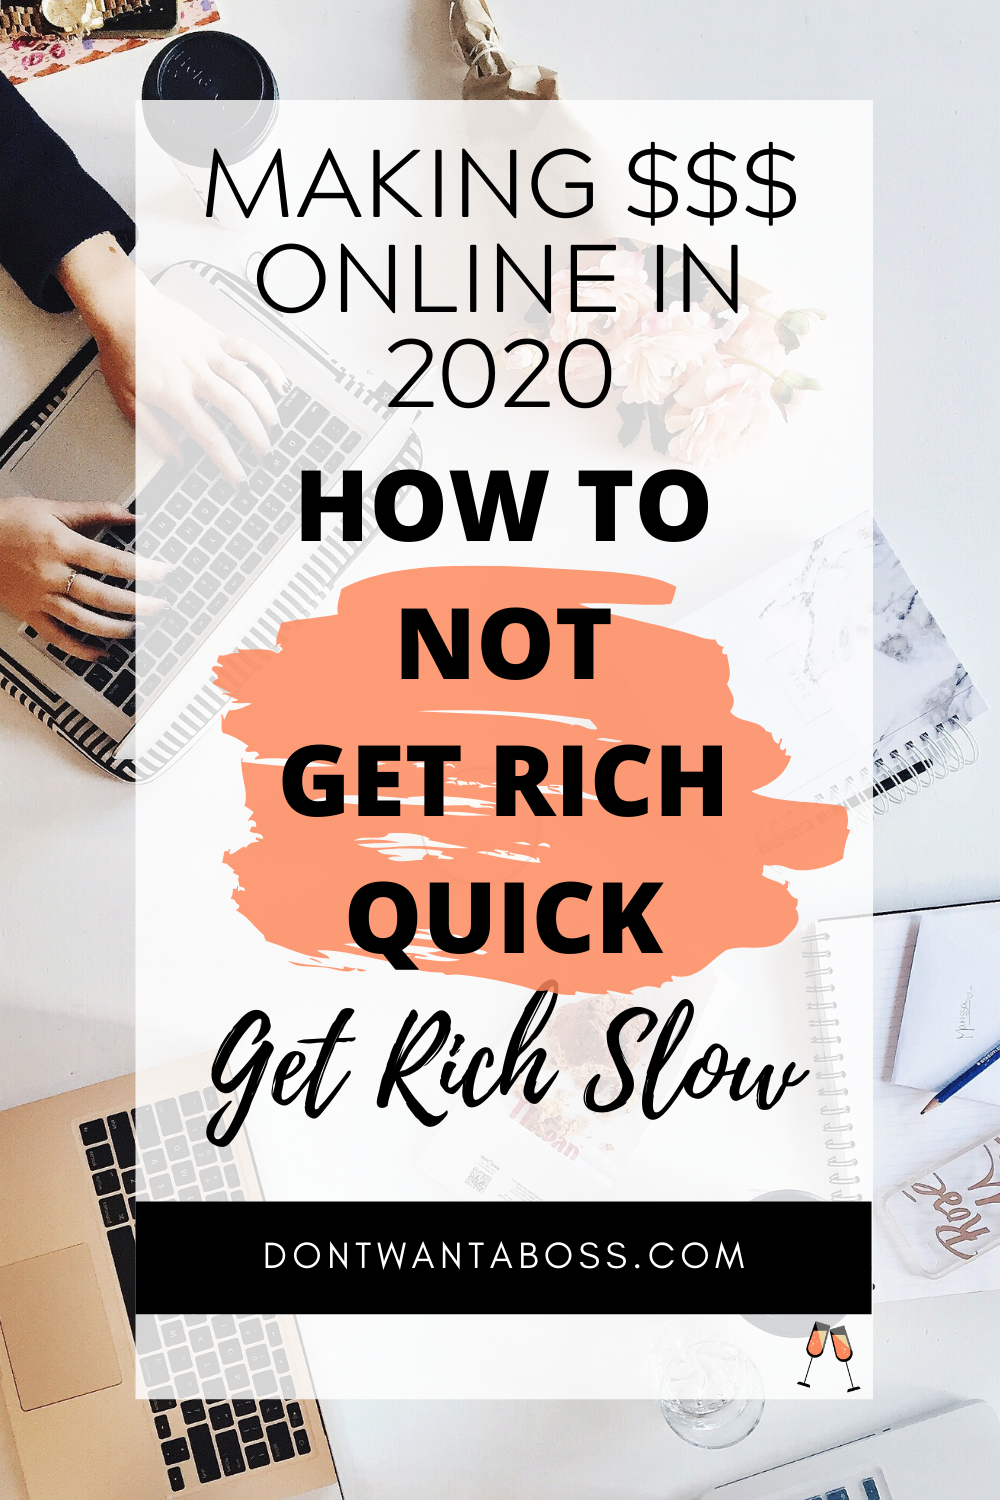 How to NOT Get Rich Quick